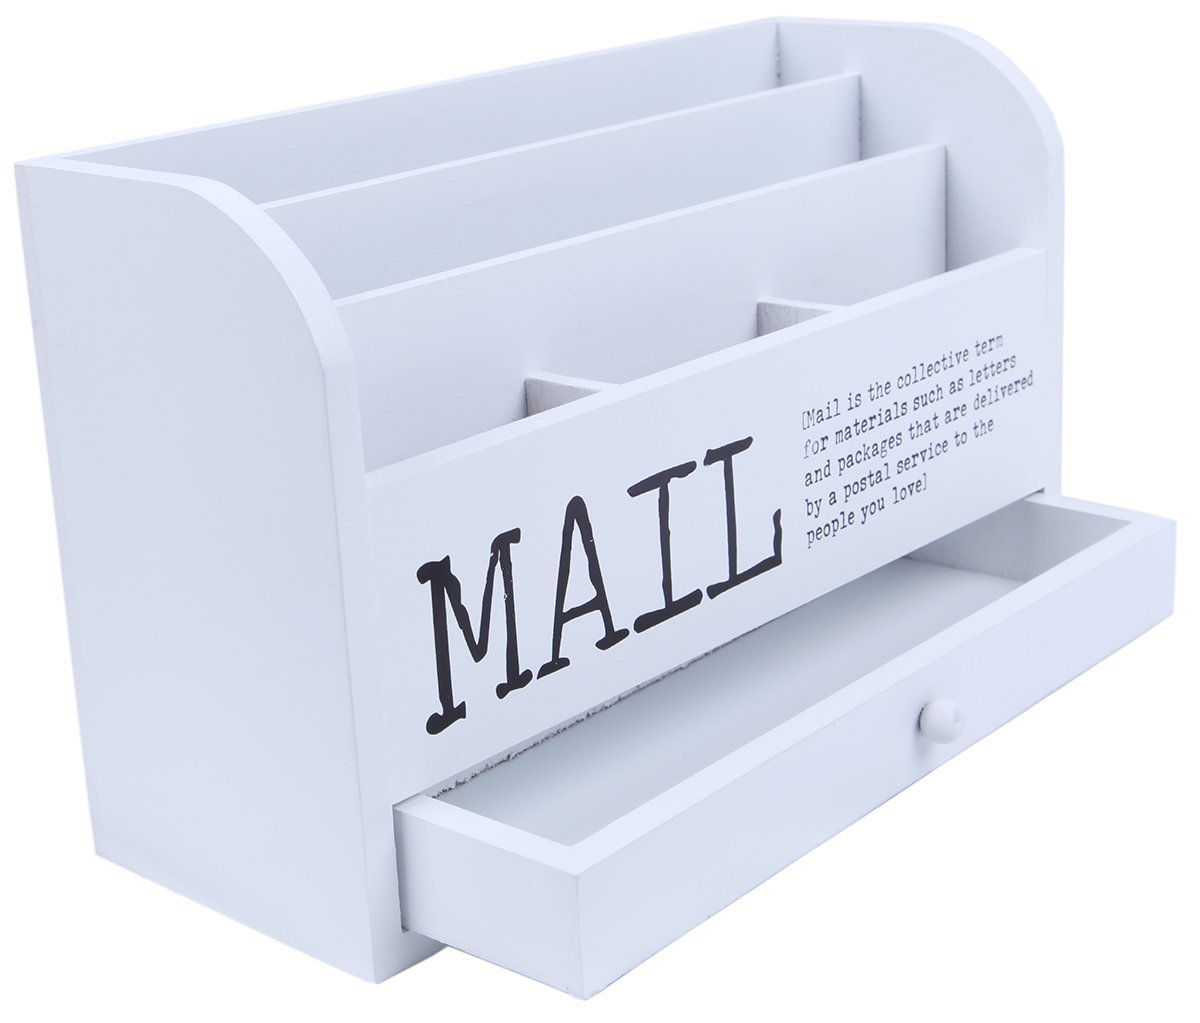 Mail Organizer How To For Free